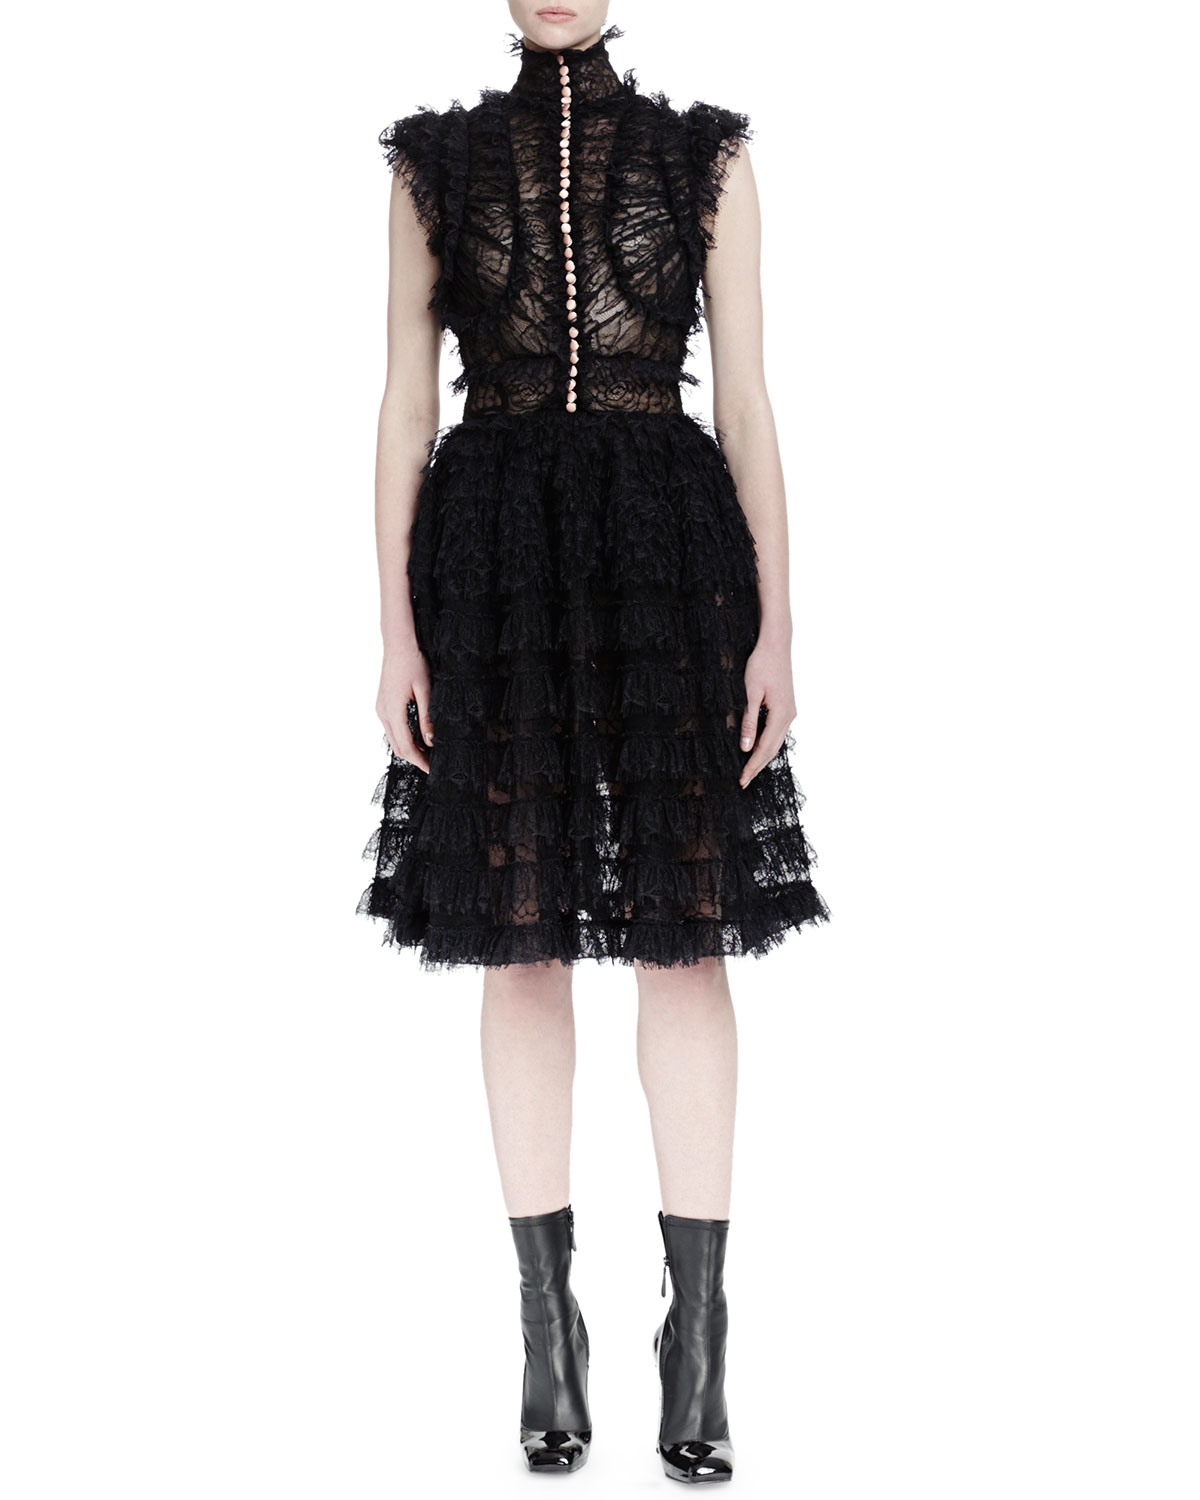 Discount Low Shipping Sale Good Selling ruffled lace jacquard dress - Black Alexander McQueen For Sale Official Site Outlet Purchase Red Pre Order Eastbay eJB8c